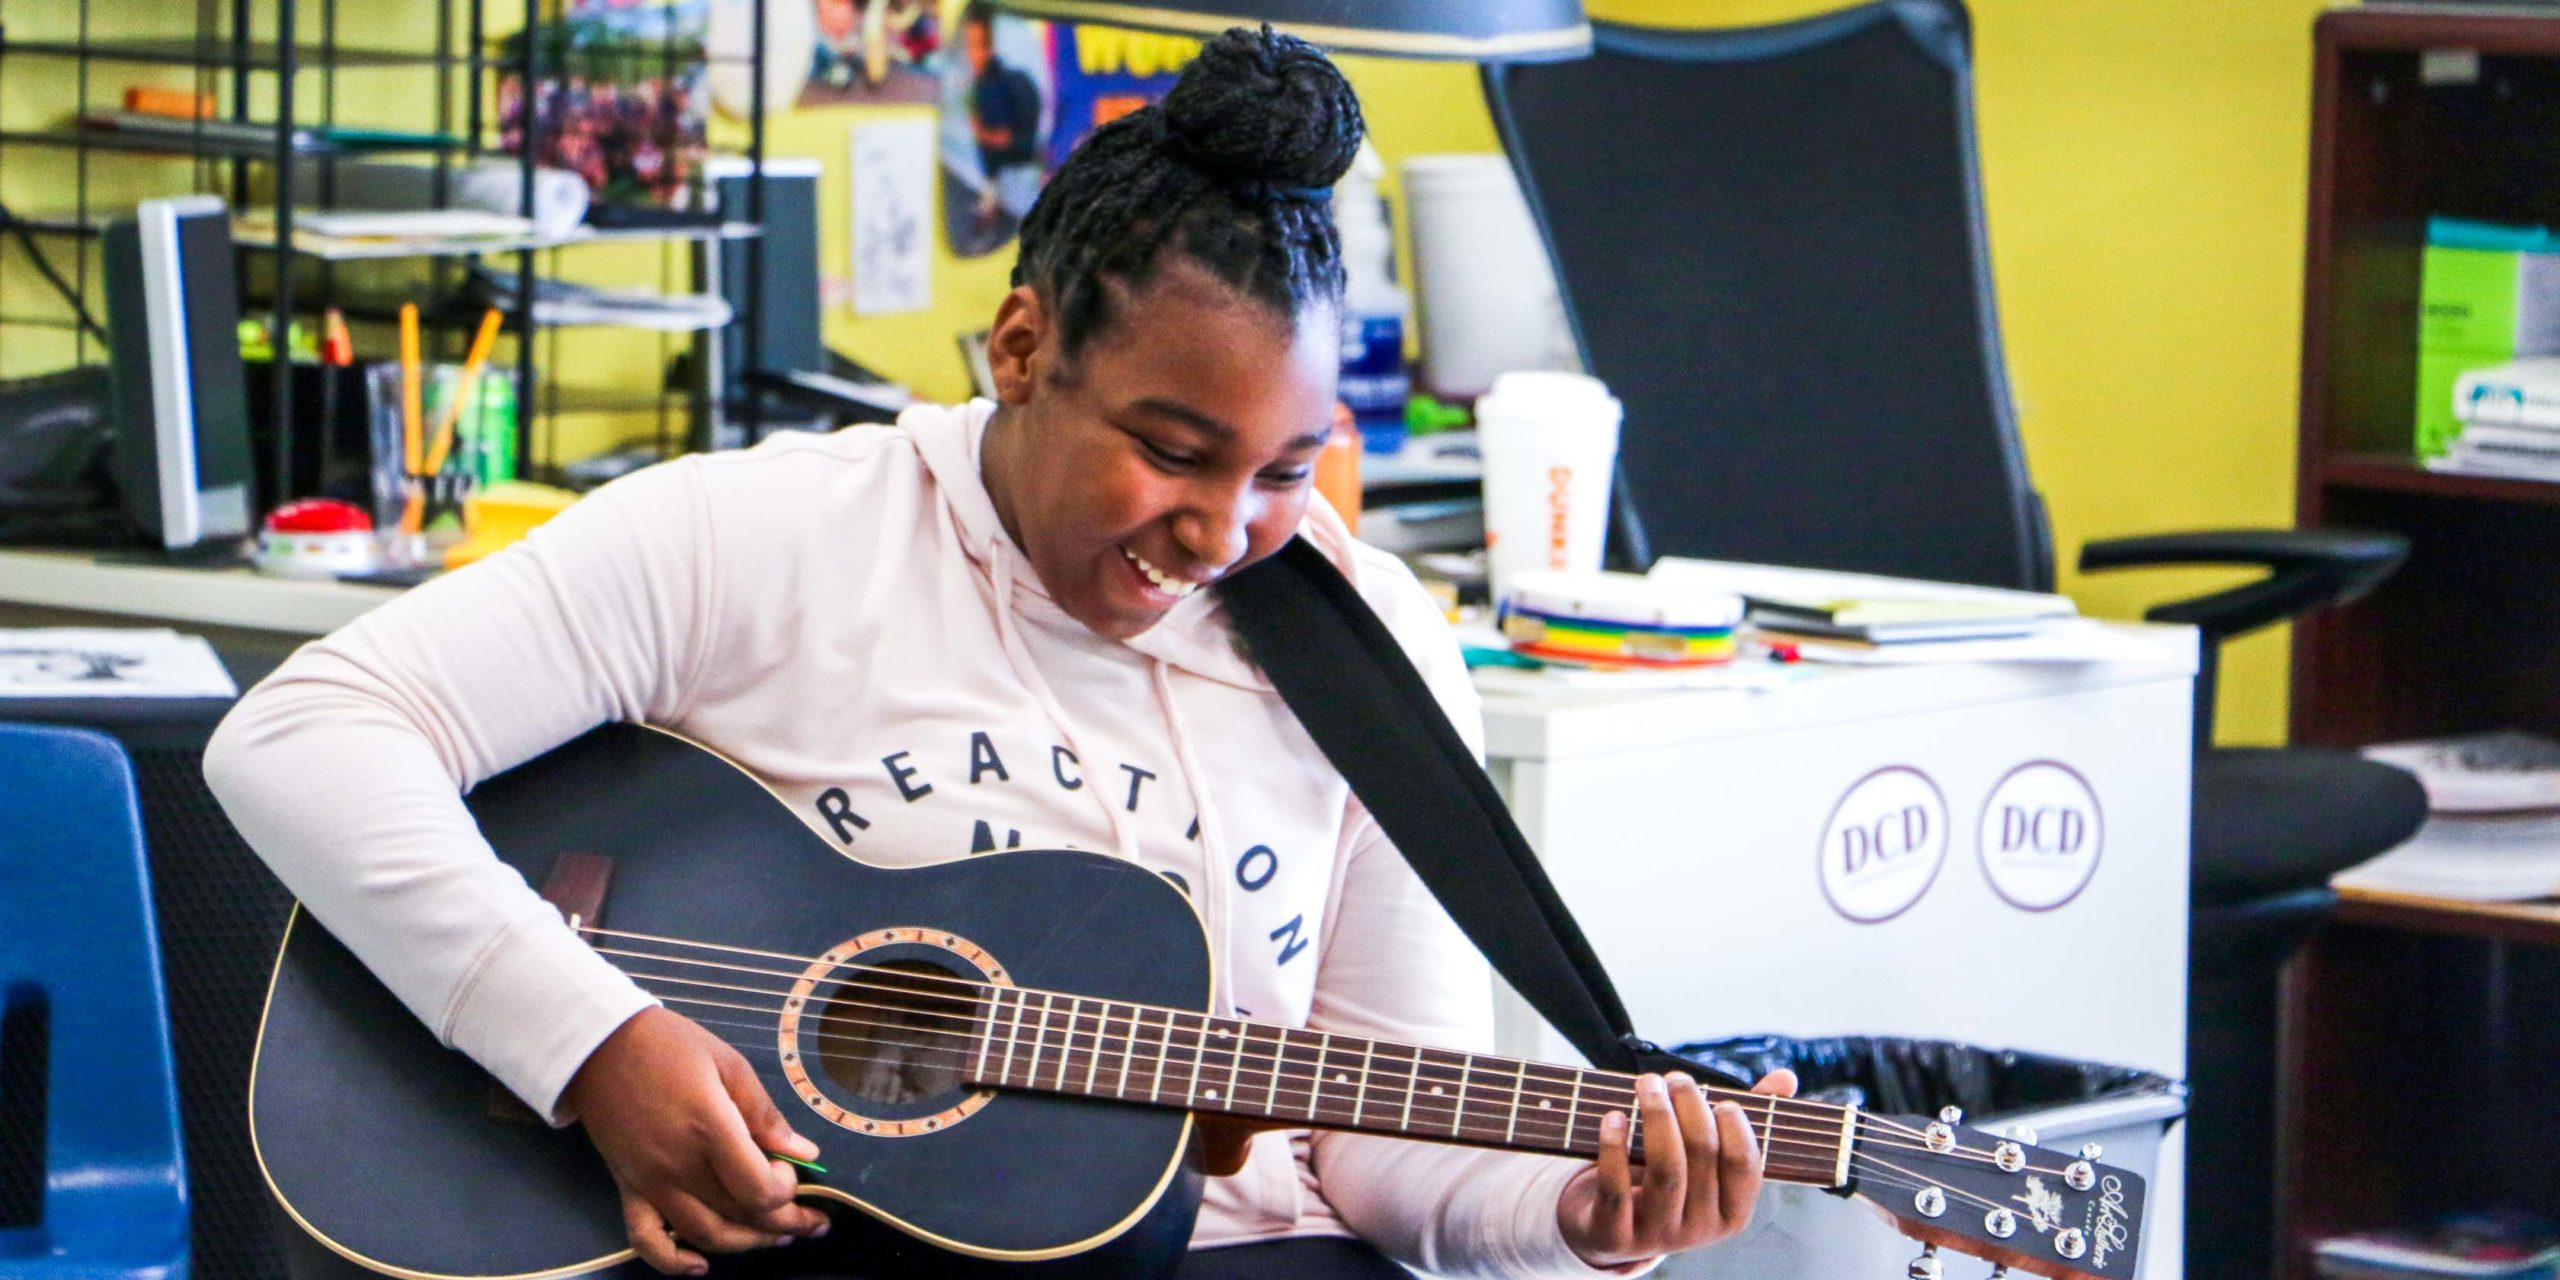 A student playing the guitar and smiling